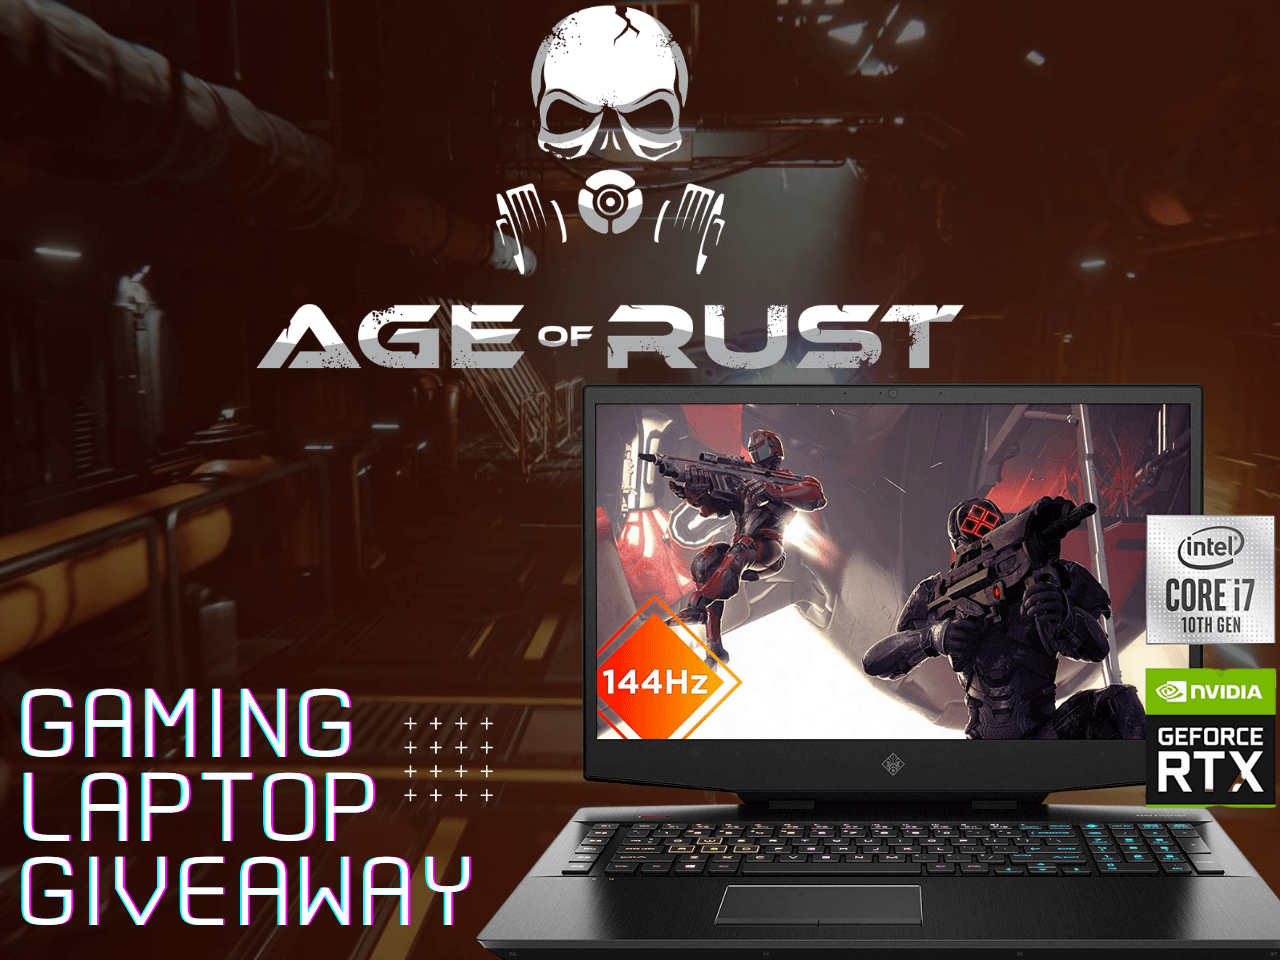 Age of Rust Gaming Laptop Giveaway